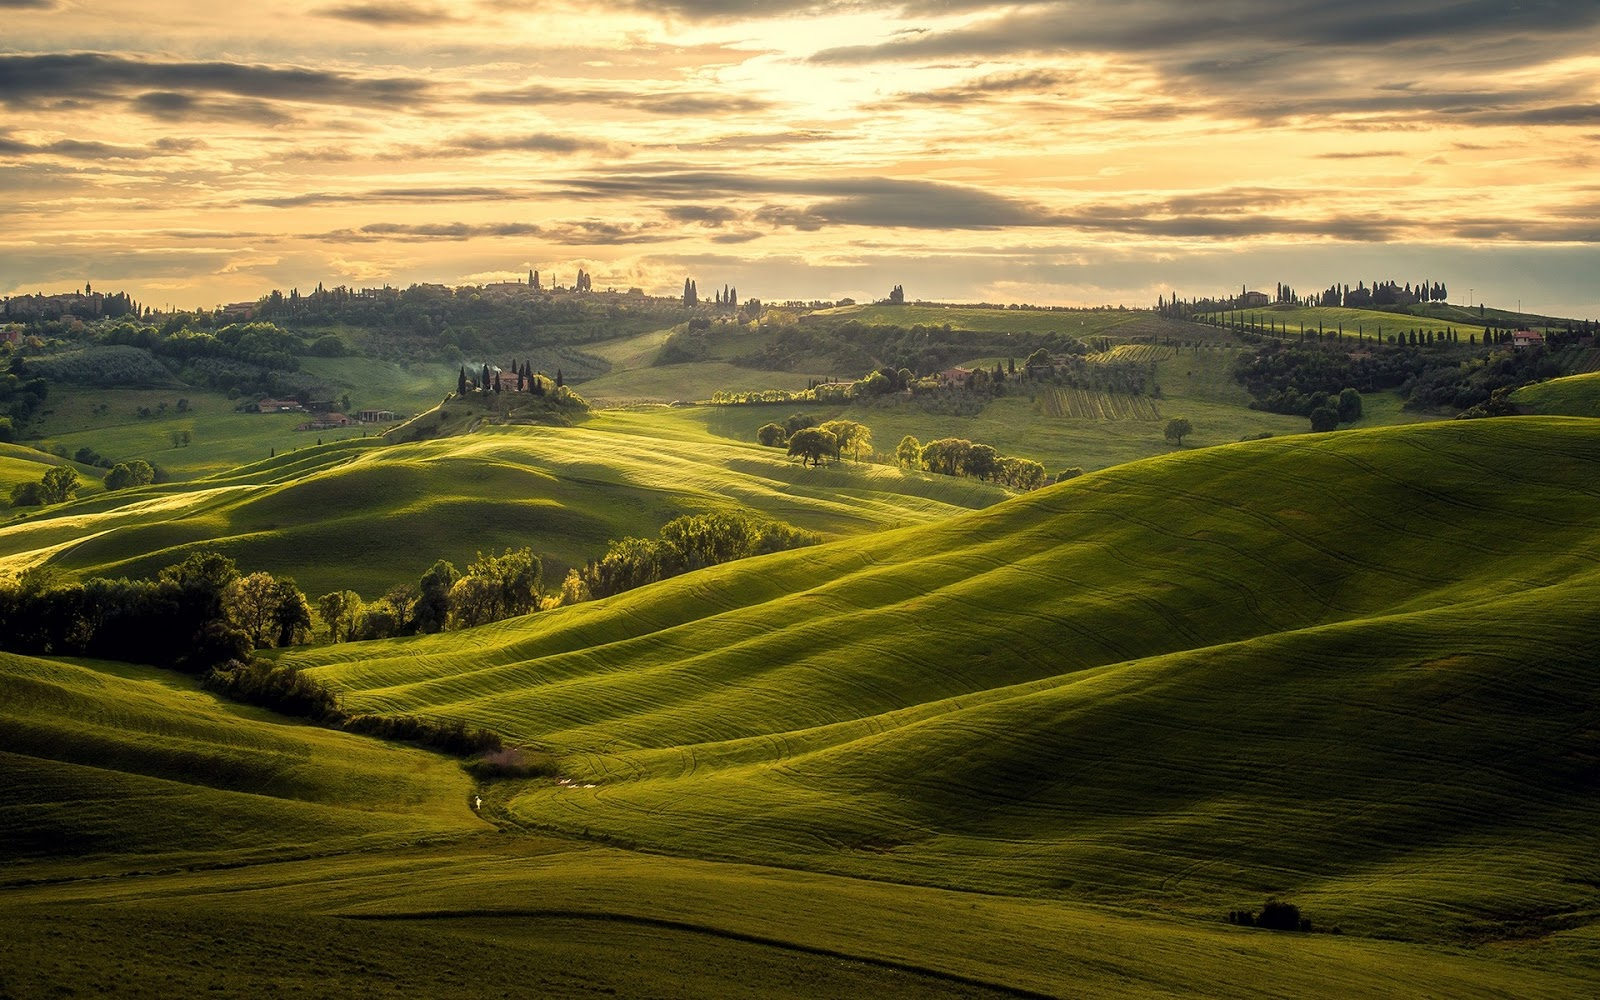 Tuscany Nature Landscape Wallpaper